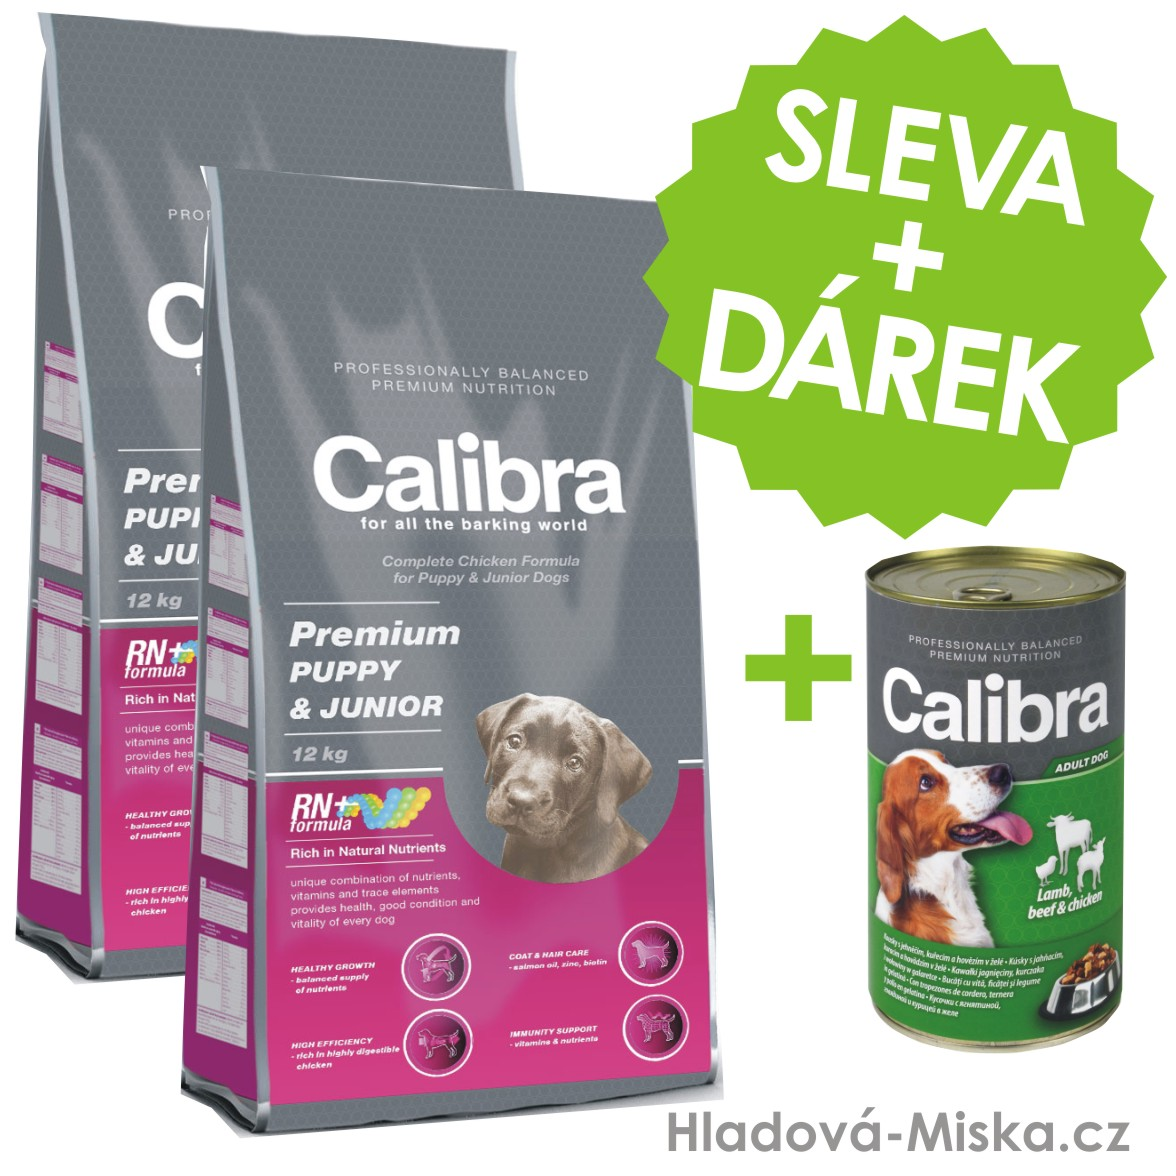 Calibra dog Premium PUPPY & JUNIOR 2x12 kg + ZDARMA konzerva Calibra!